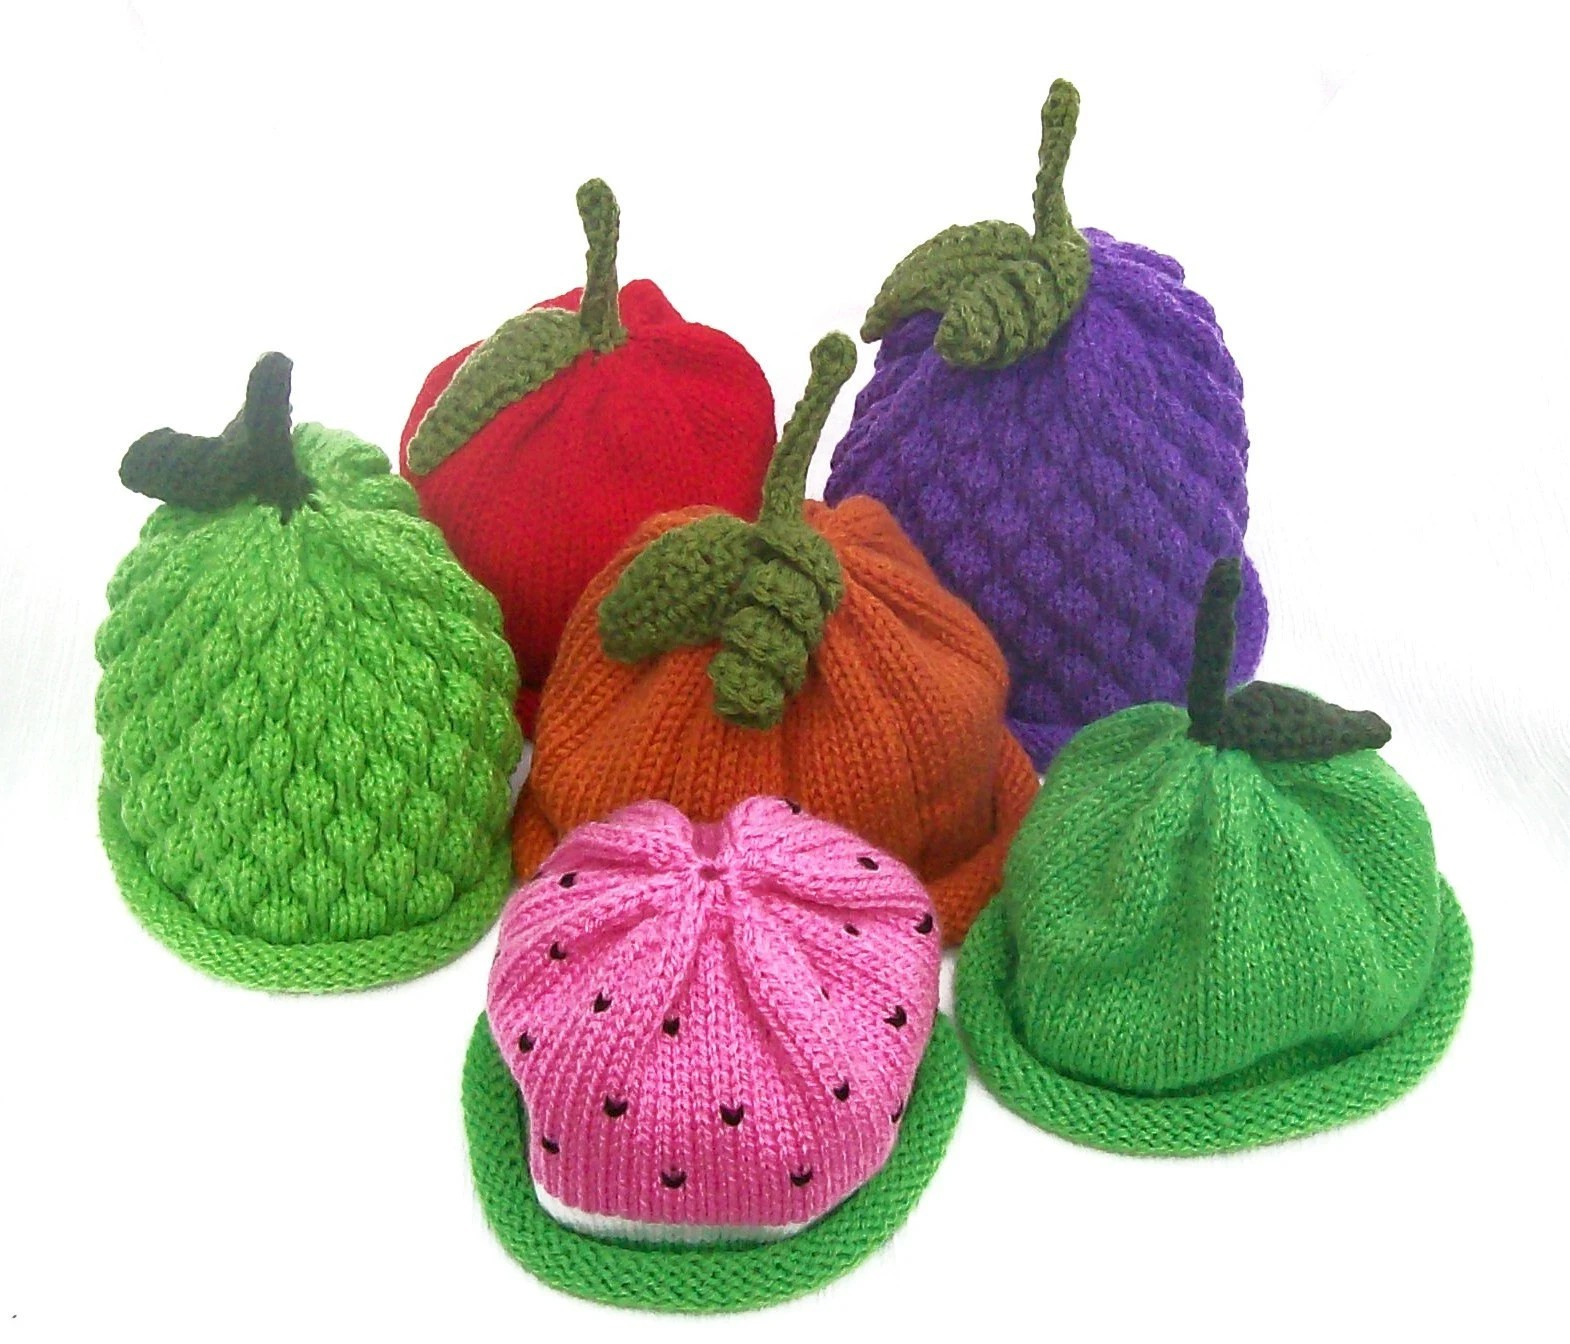 Mix and Match Fruit Hats 4 Pack - You Pick